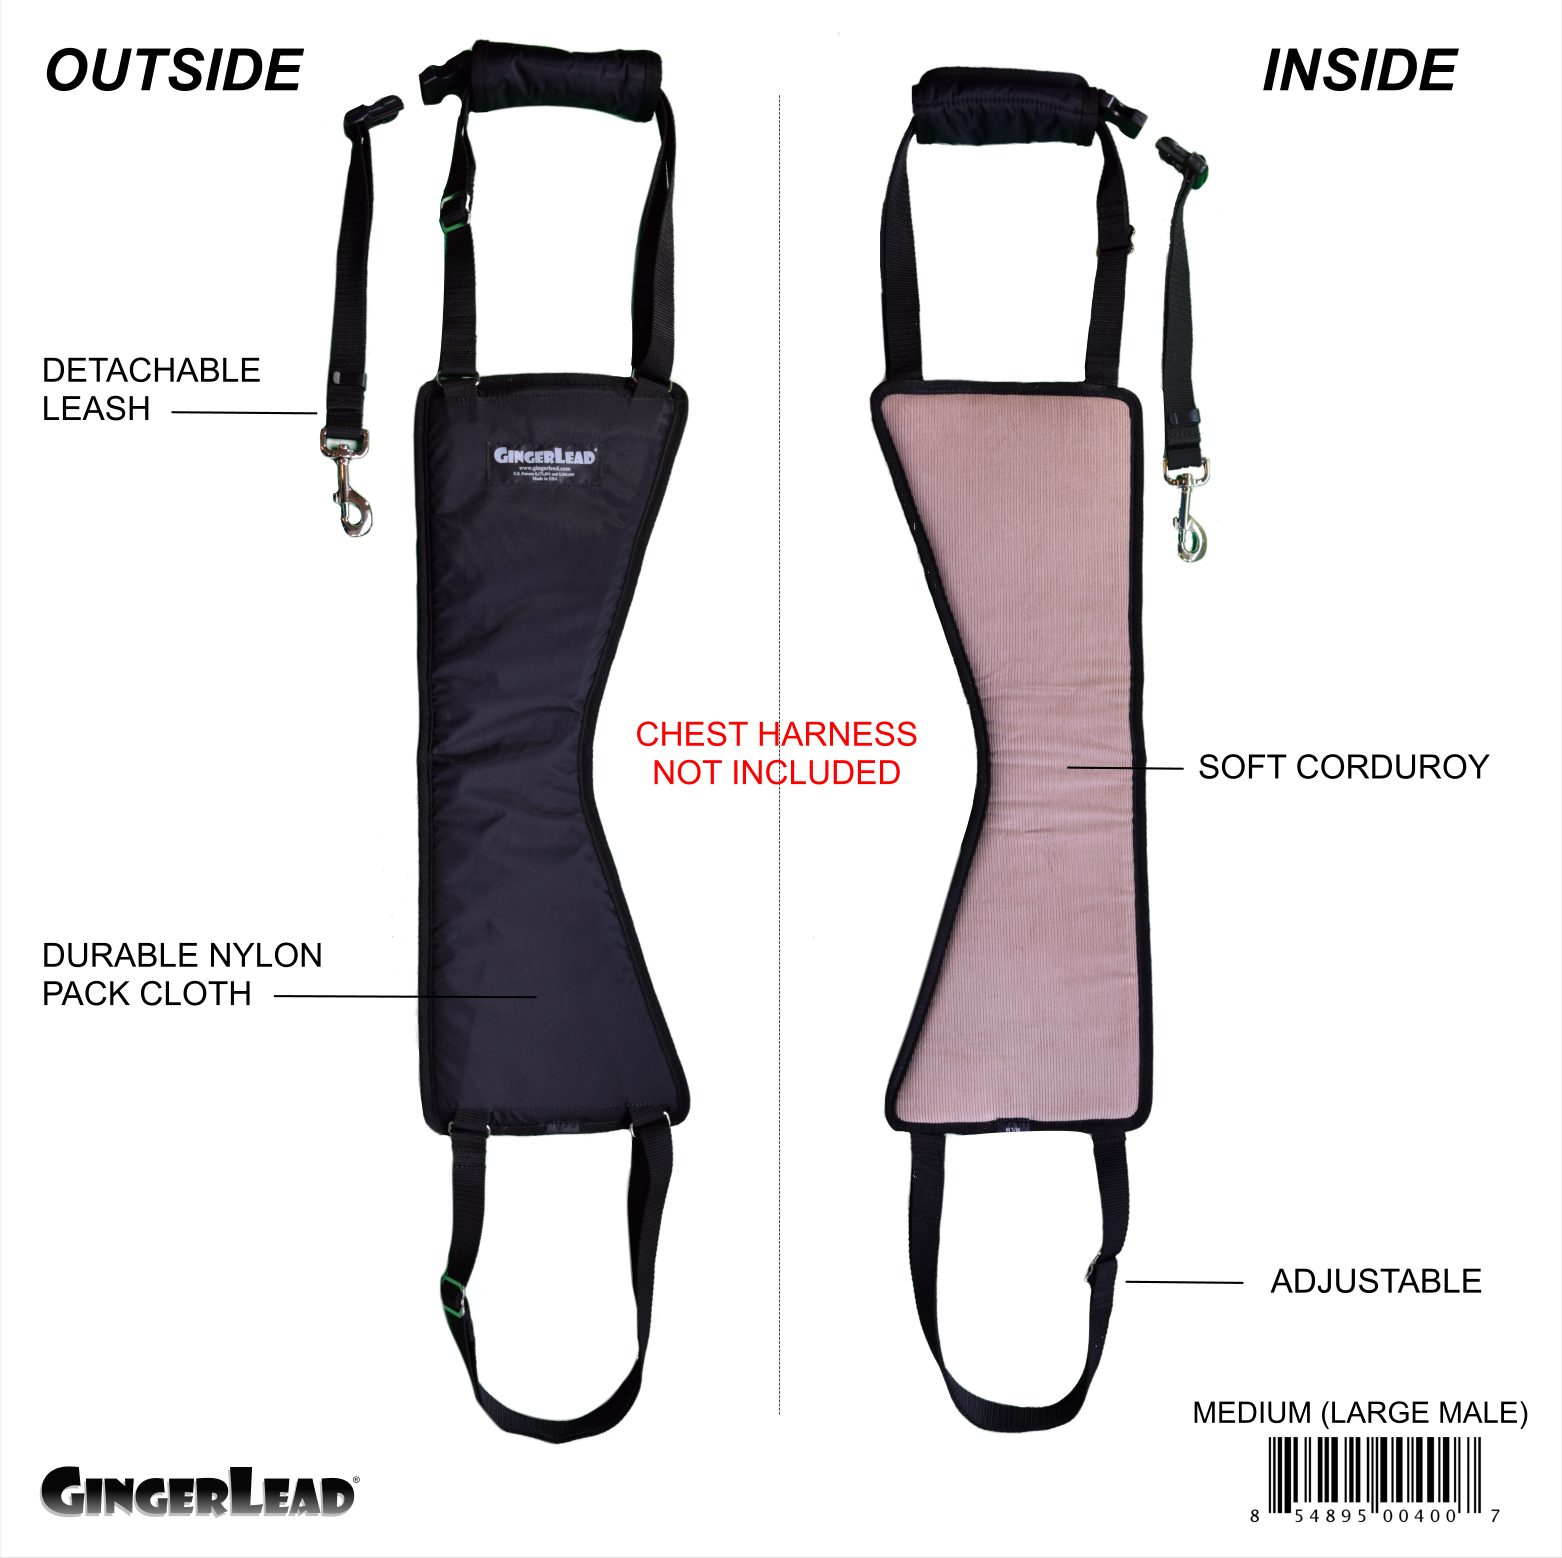 GingerLead Dog Sling, Medium/Large Male Size - Out of Box